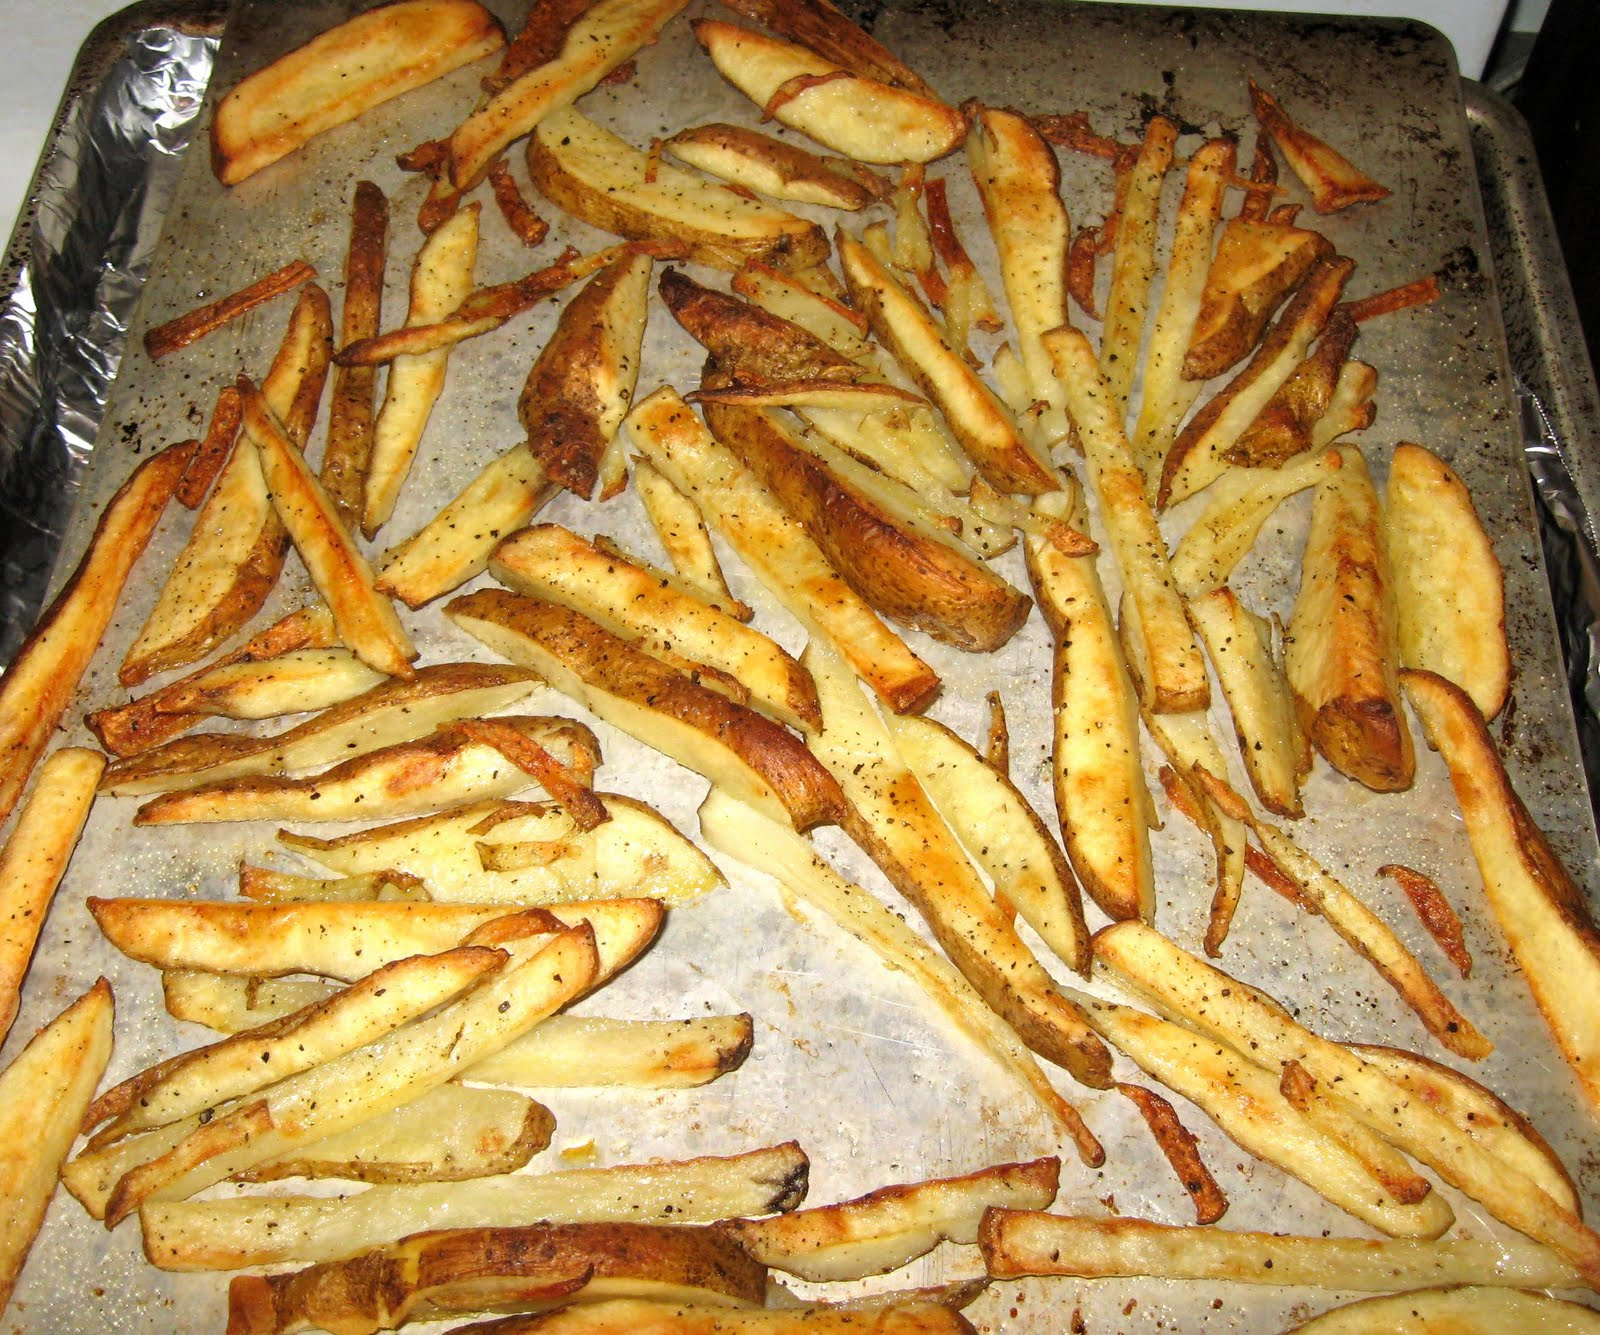 Debbi Does Dinner... Healthy & Low Calorie: Oven Baked French Fries